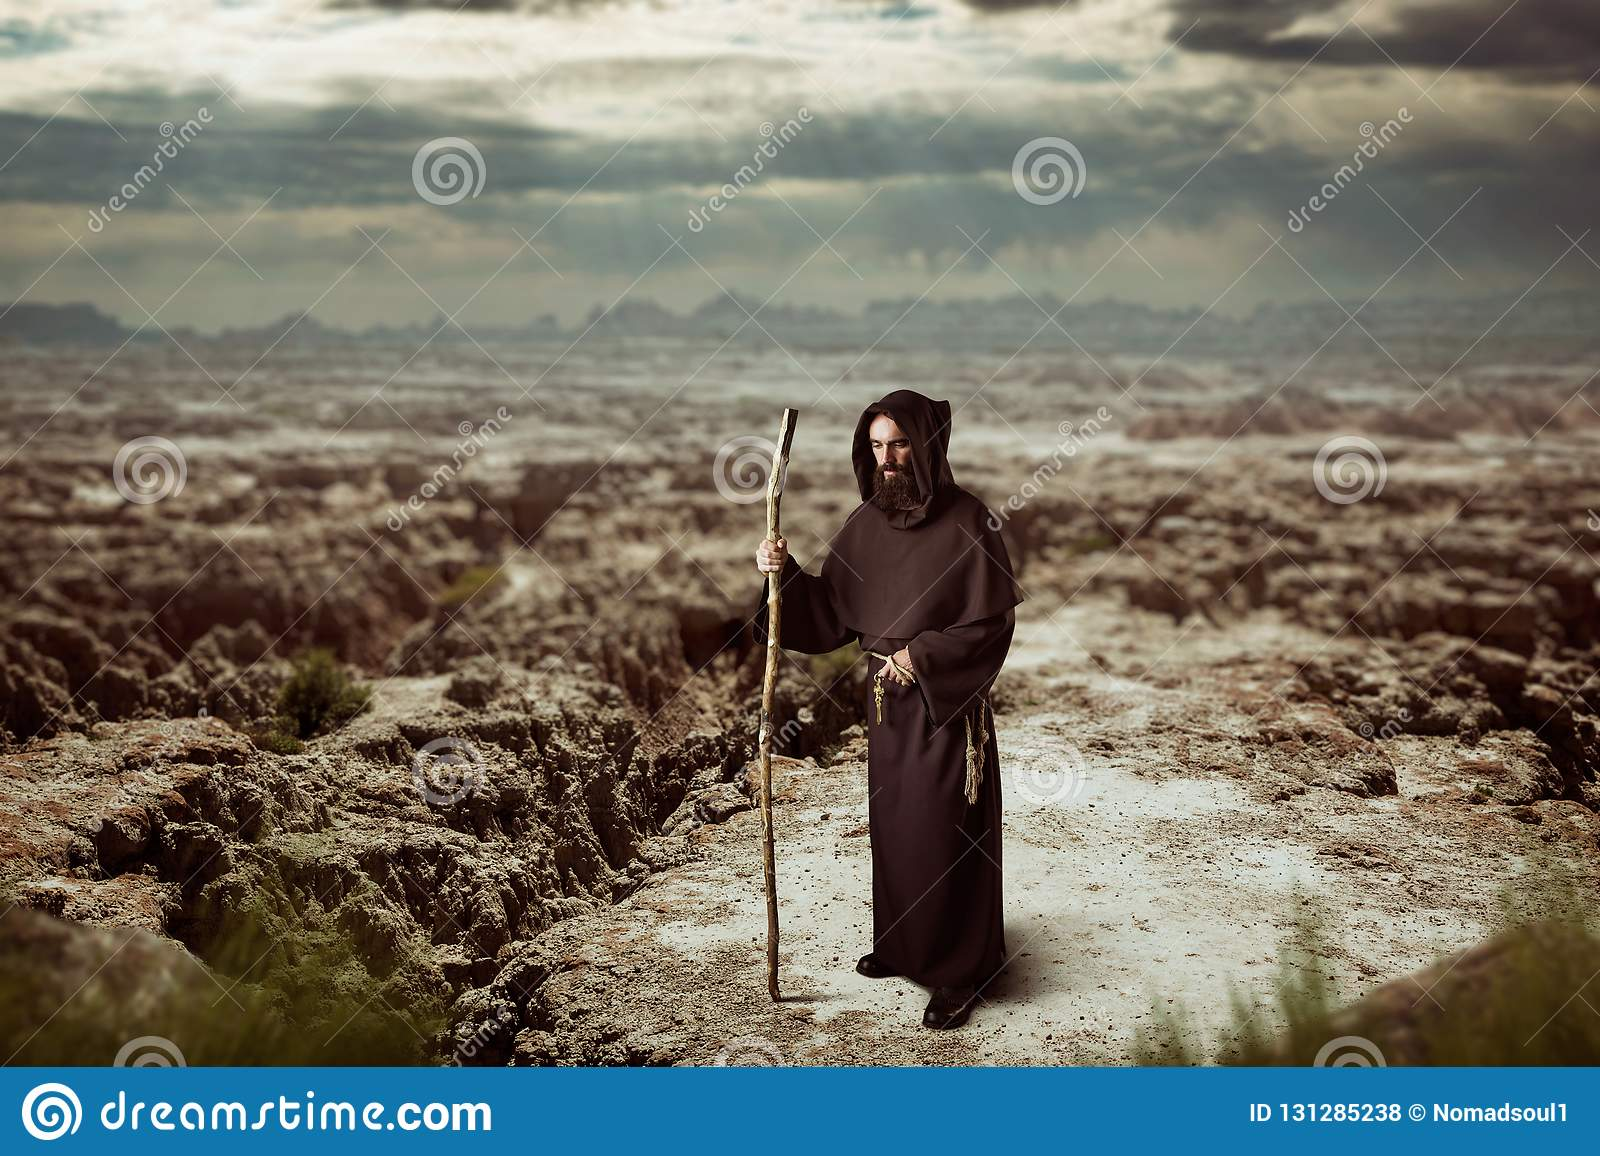 f6efdae525 Medieval monk in robe with hood rests on a stick stock photo image jpg  1600x1156 Medieval